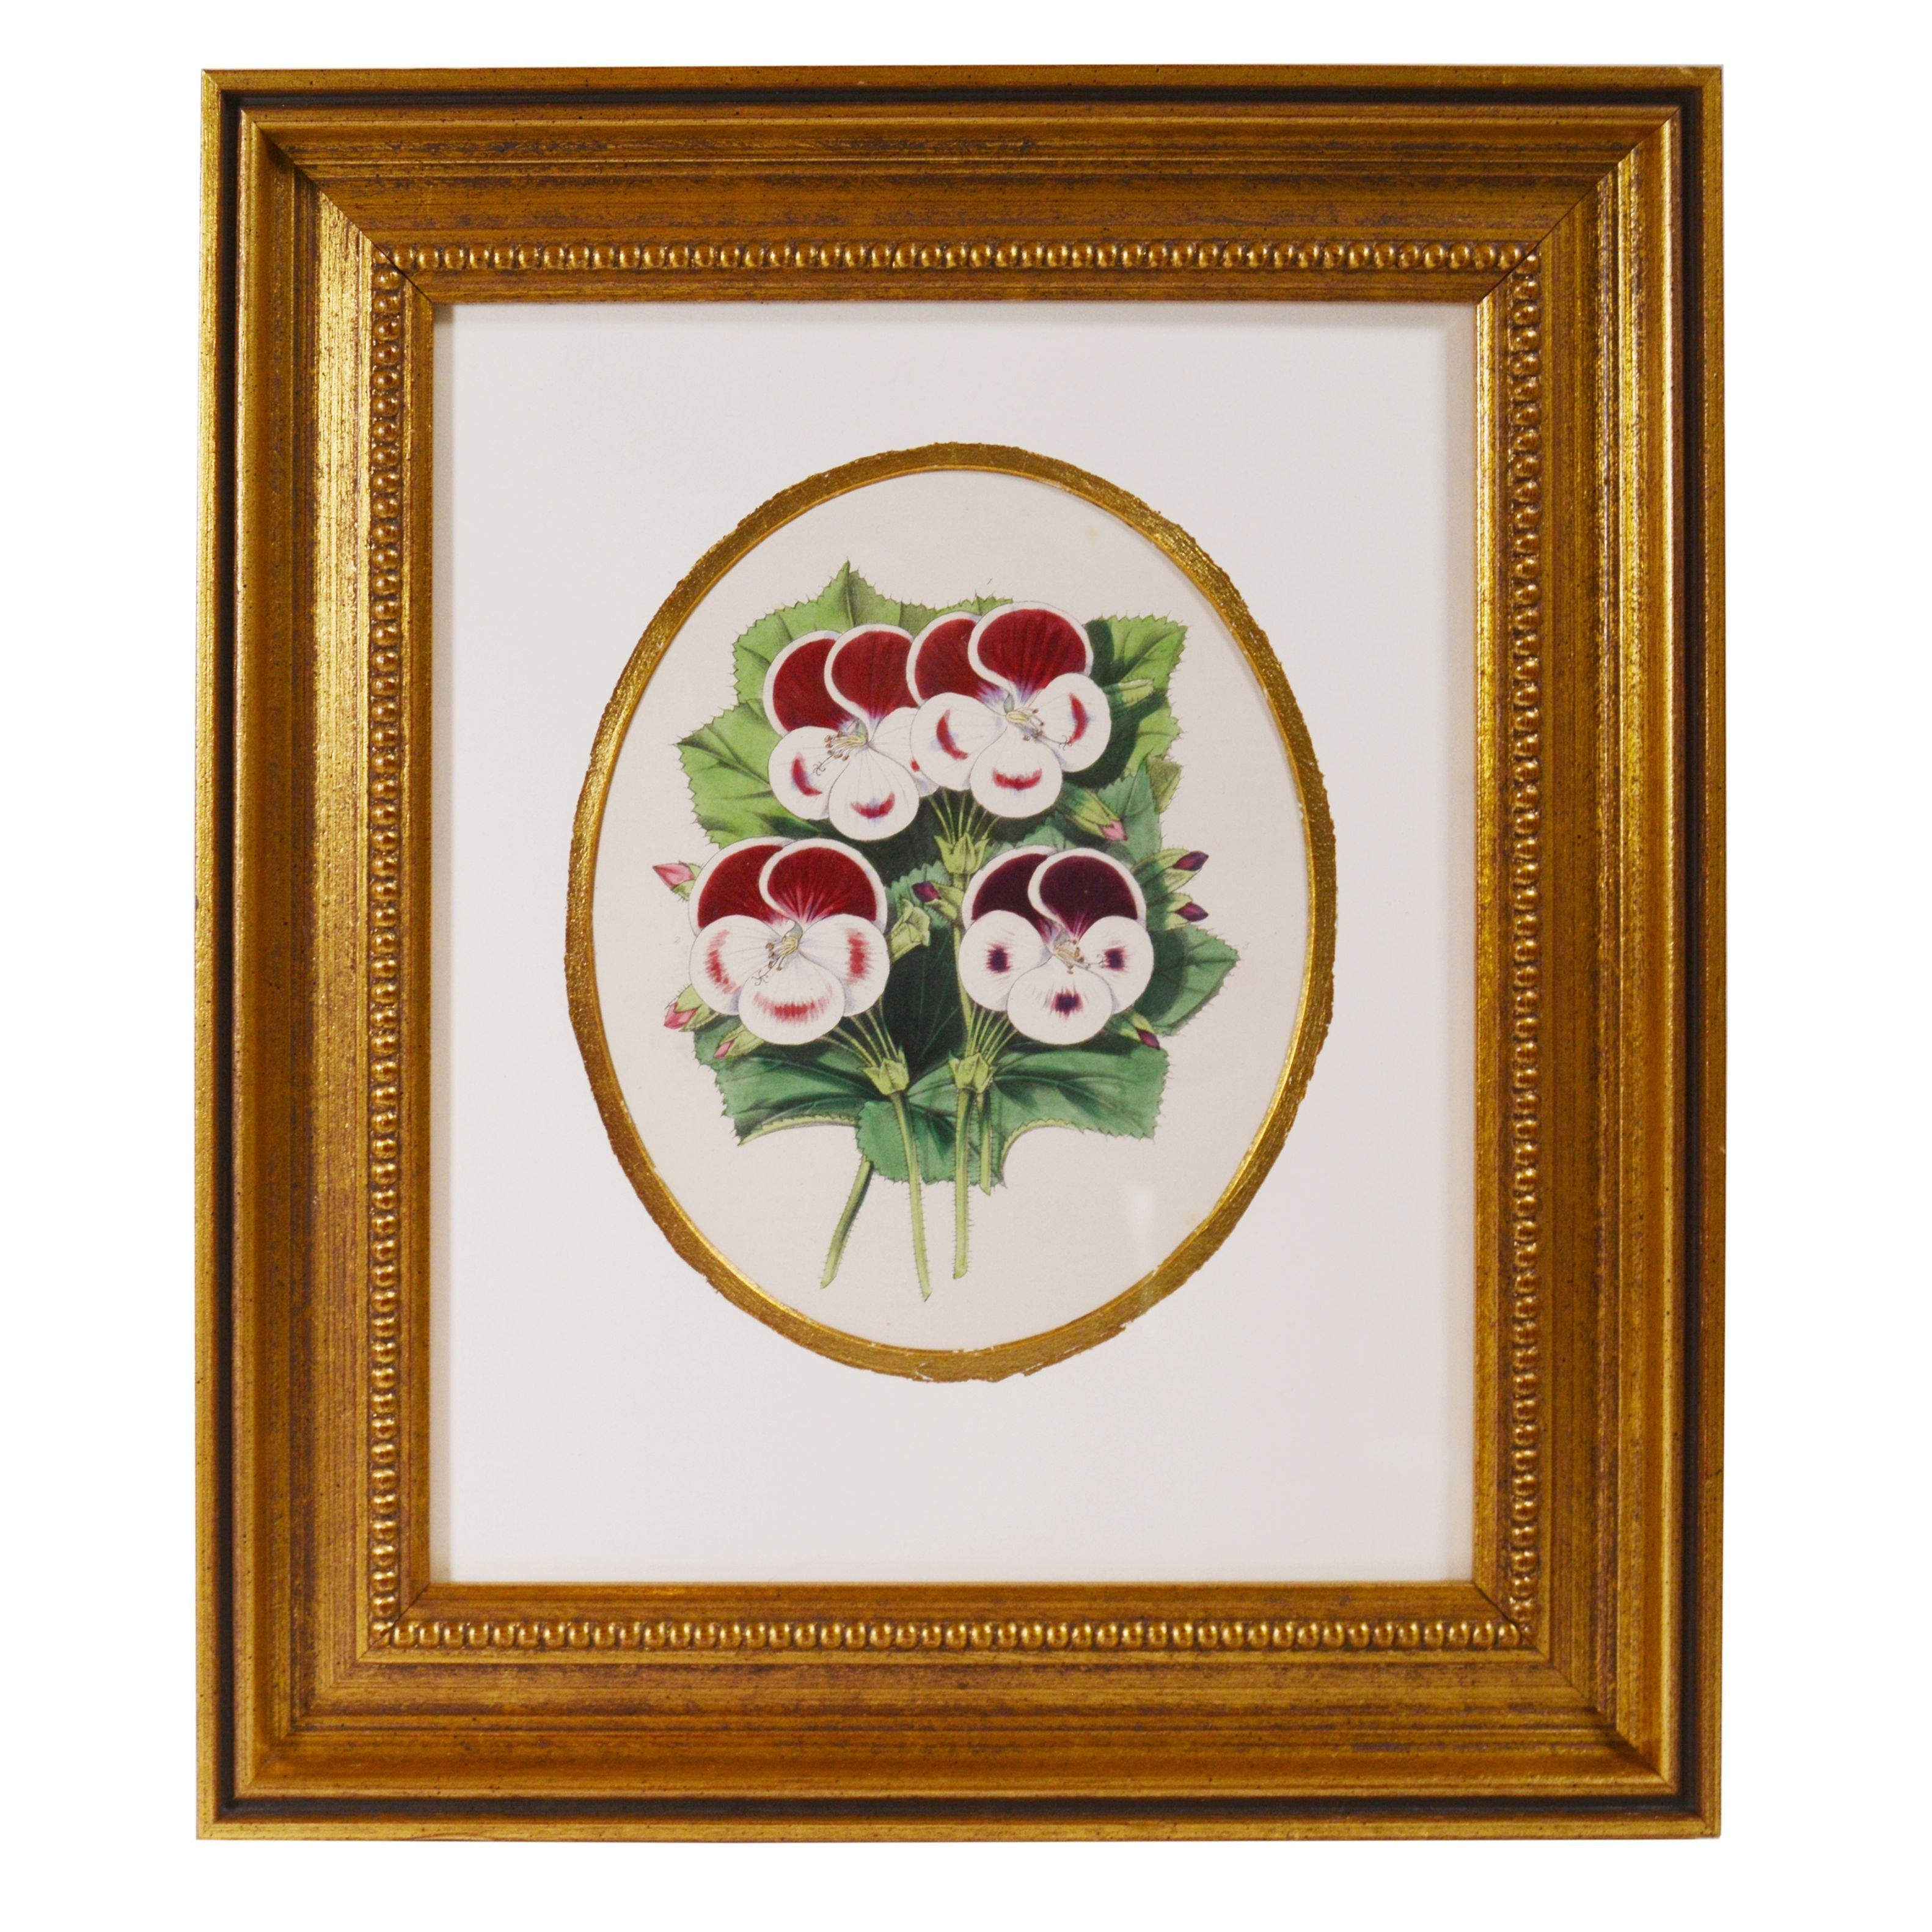 Lithograph of Pansies